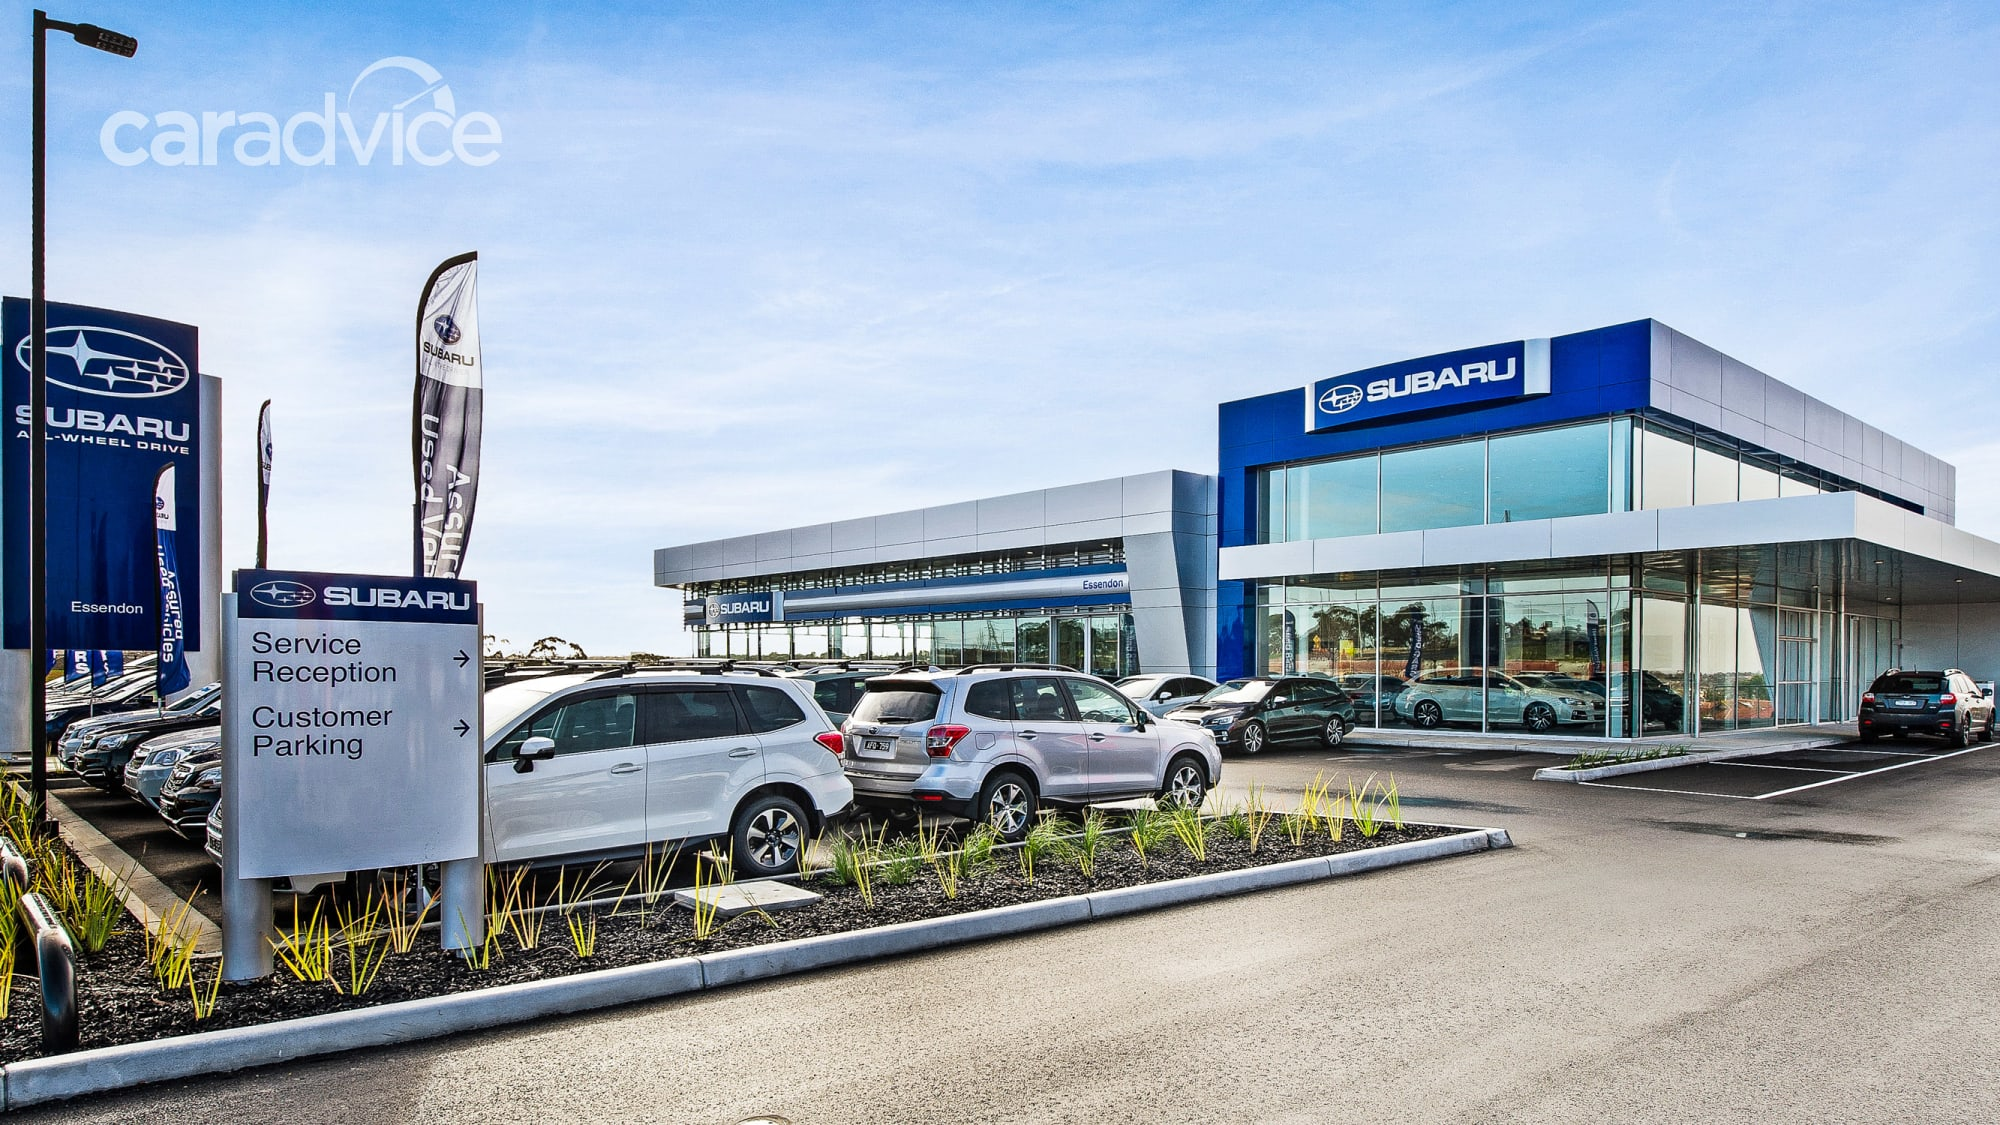 Subaru dealerships in Victoria move to fixed-pricing model - 1 of 2